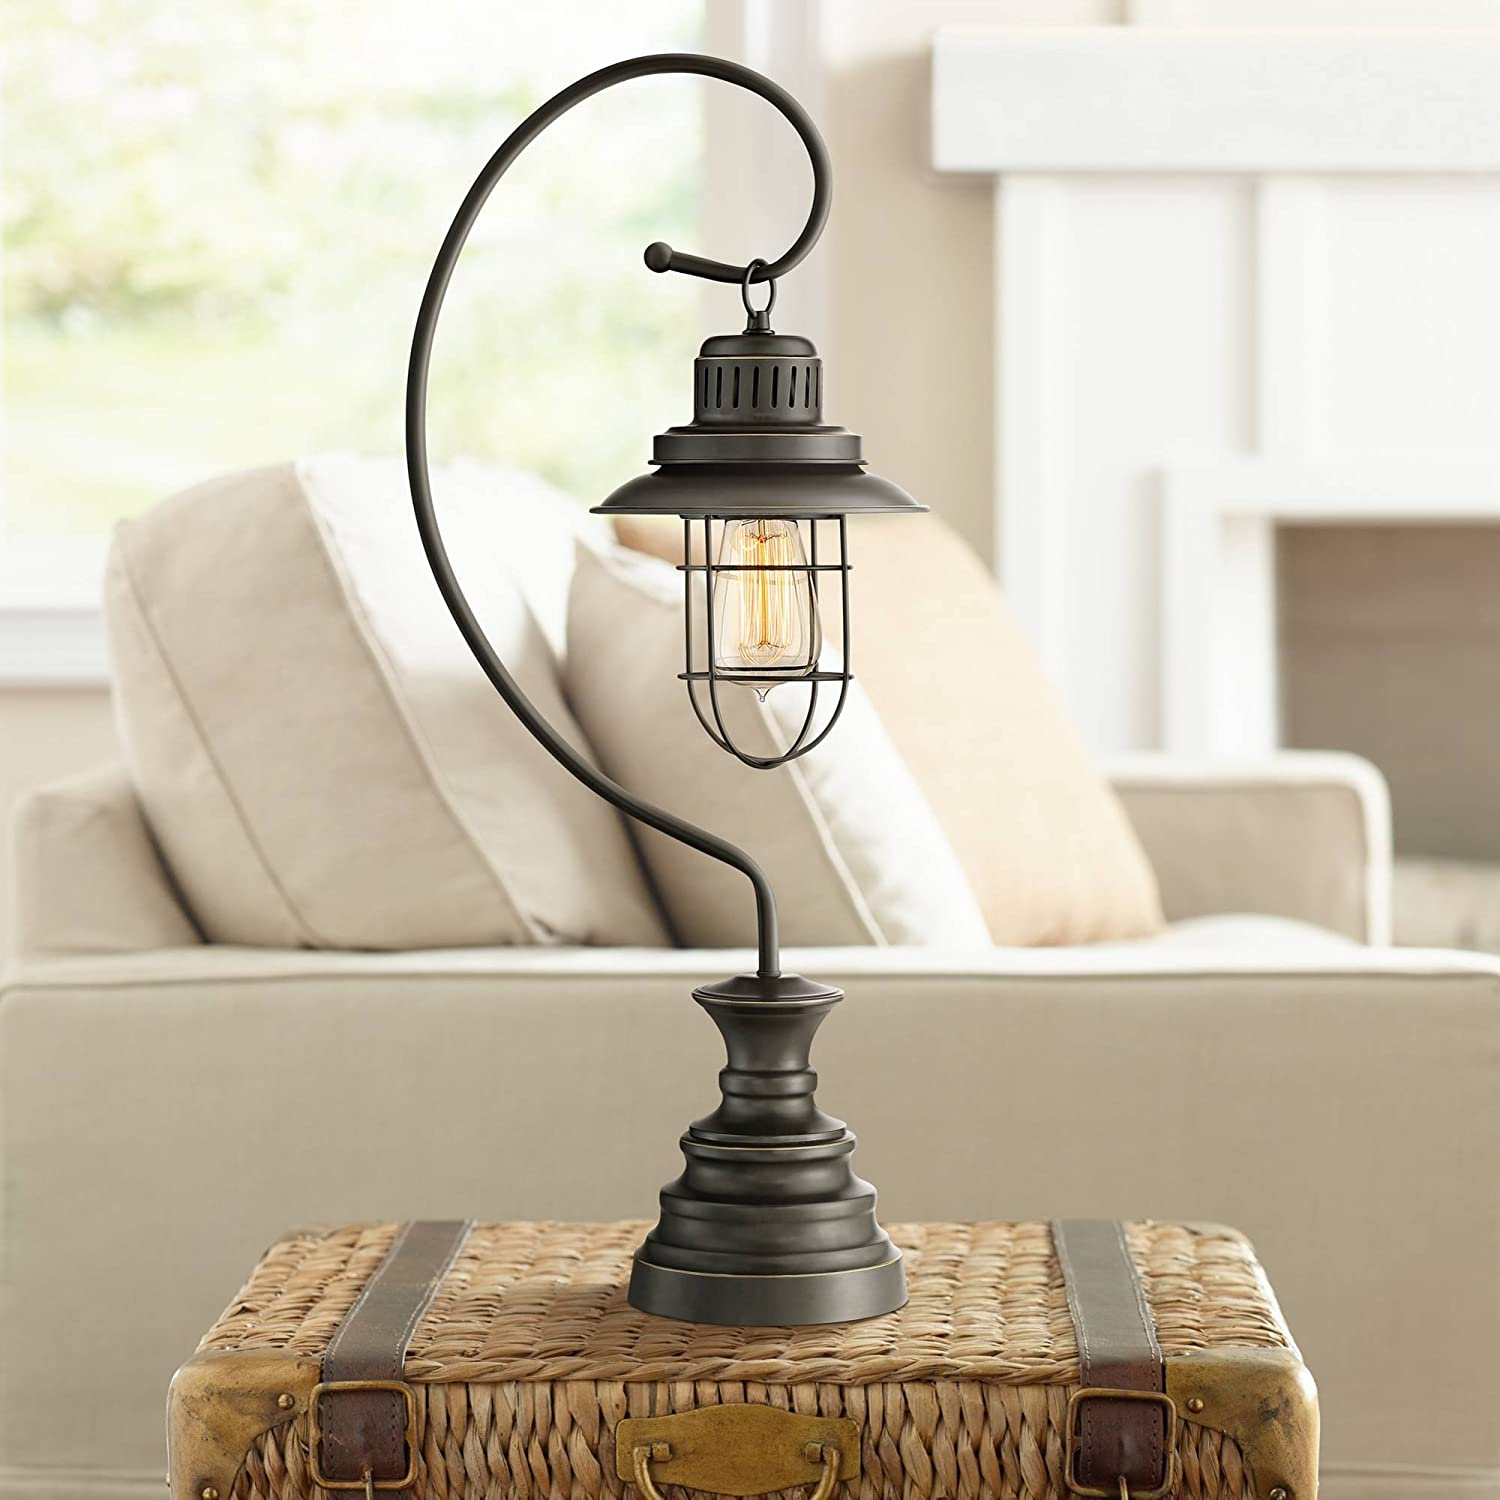 Ulysses Industrial Desk Table Lamp Dark Oil Rubbed Bronze Metal Wire Cage Shade Lantern for Living Room Bedroom Office – Franklin Iron Works